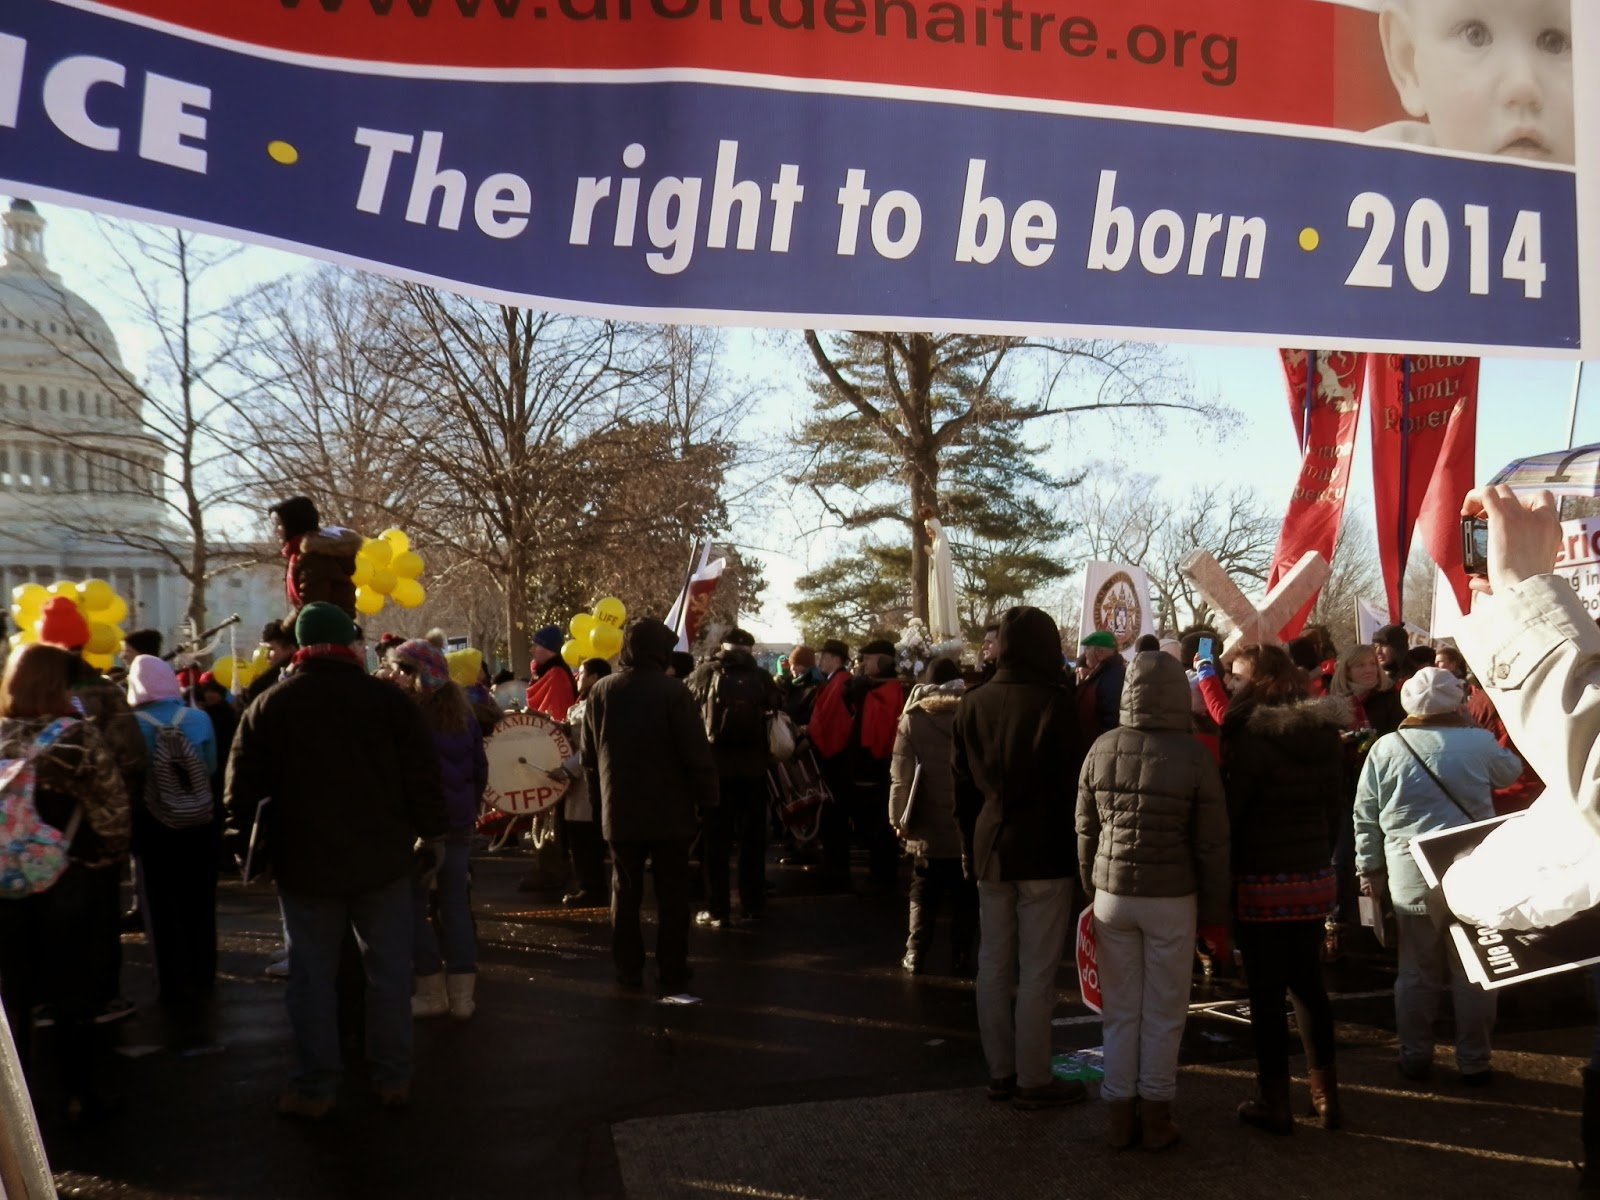 hundreds of thousands gather to march for life each year